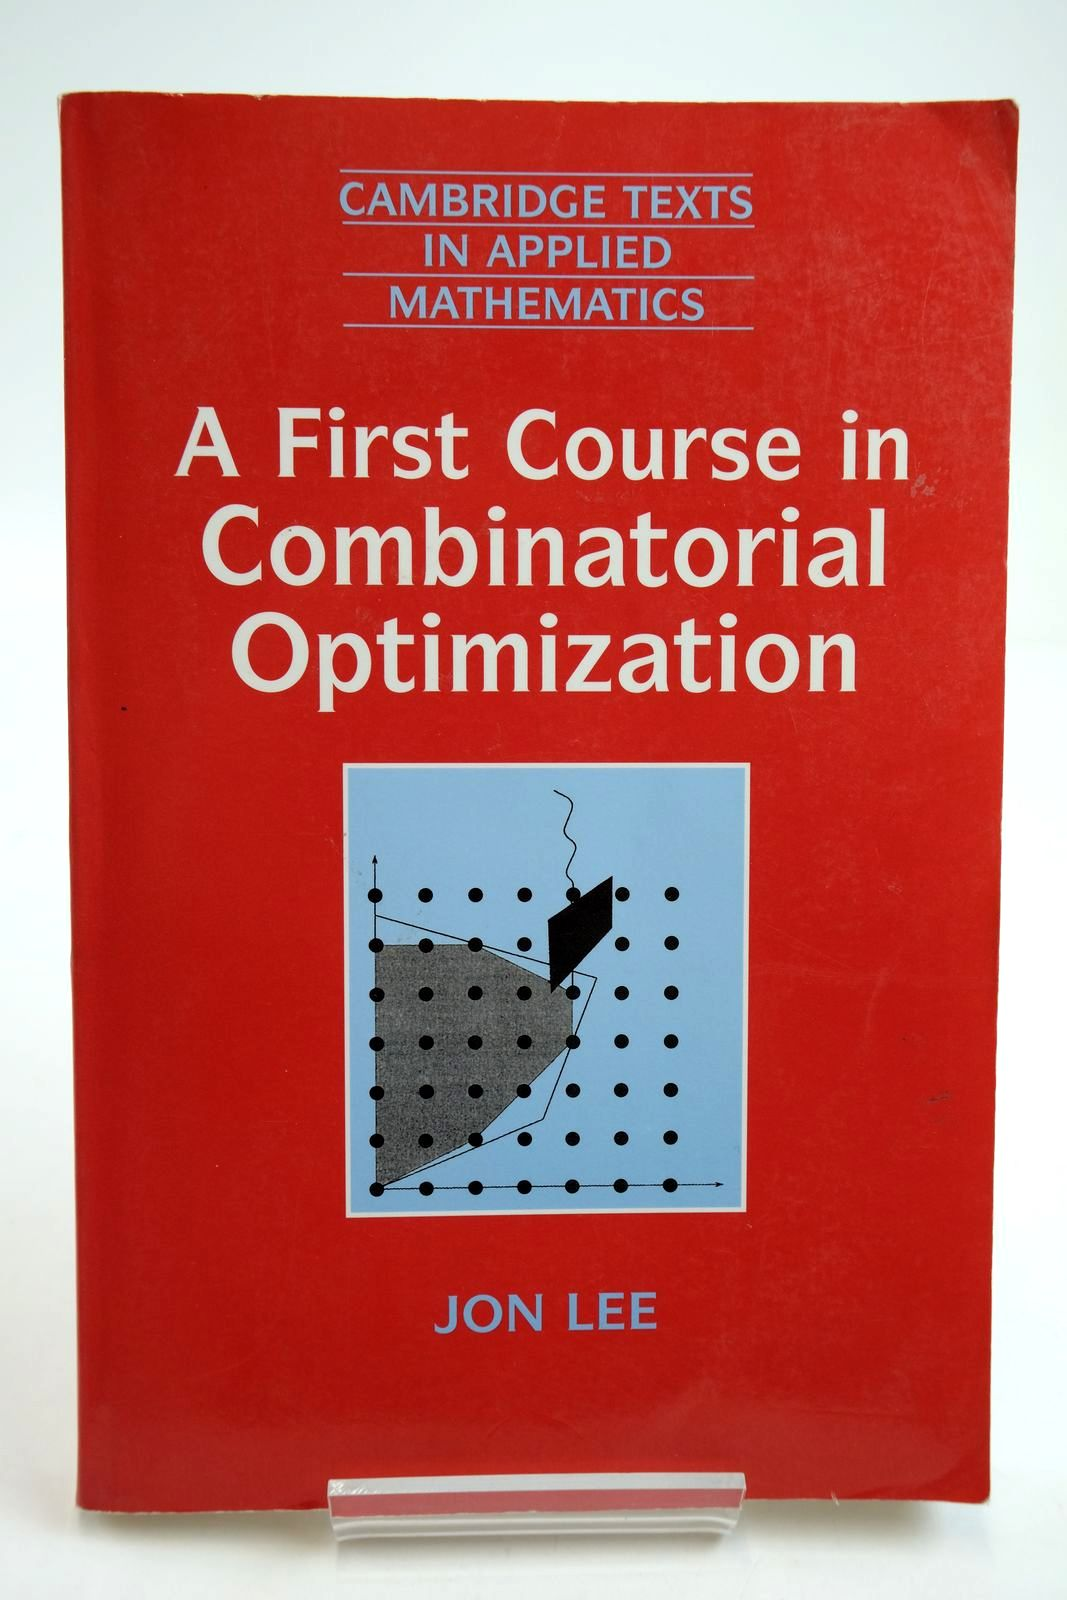 Photo of A FIRST COURSE IN COMBINATORIAL OPTIMIZATION written by Lee, Jon published by Press Syndicate Of The University Of Cambridge (STOCK CODE: 2134102)  for sale by Stella & Rose's Books